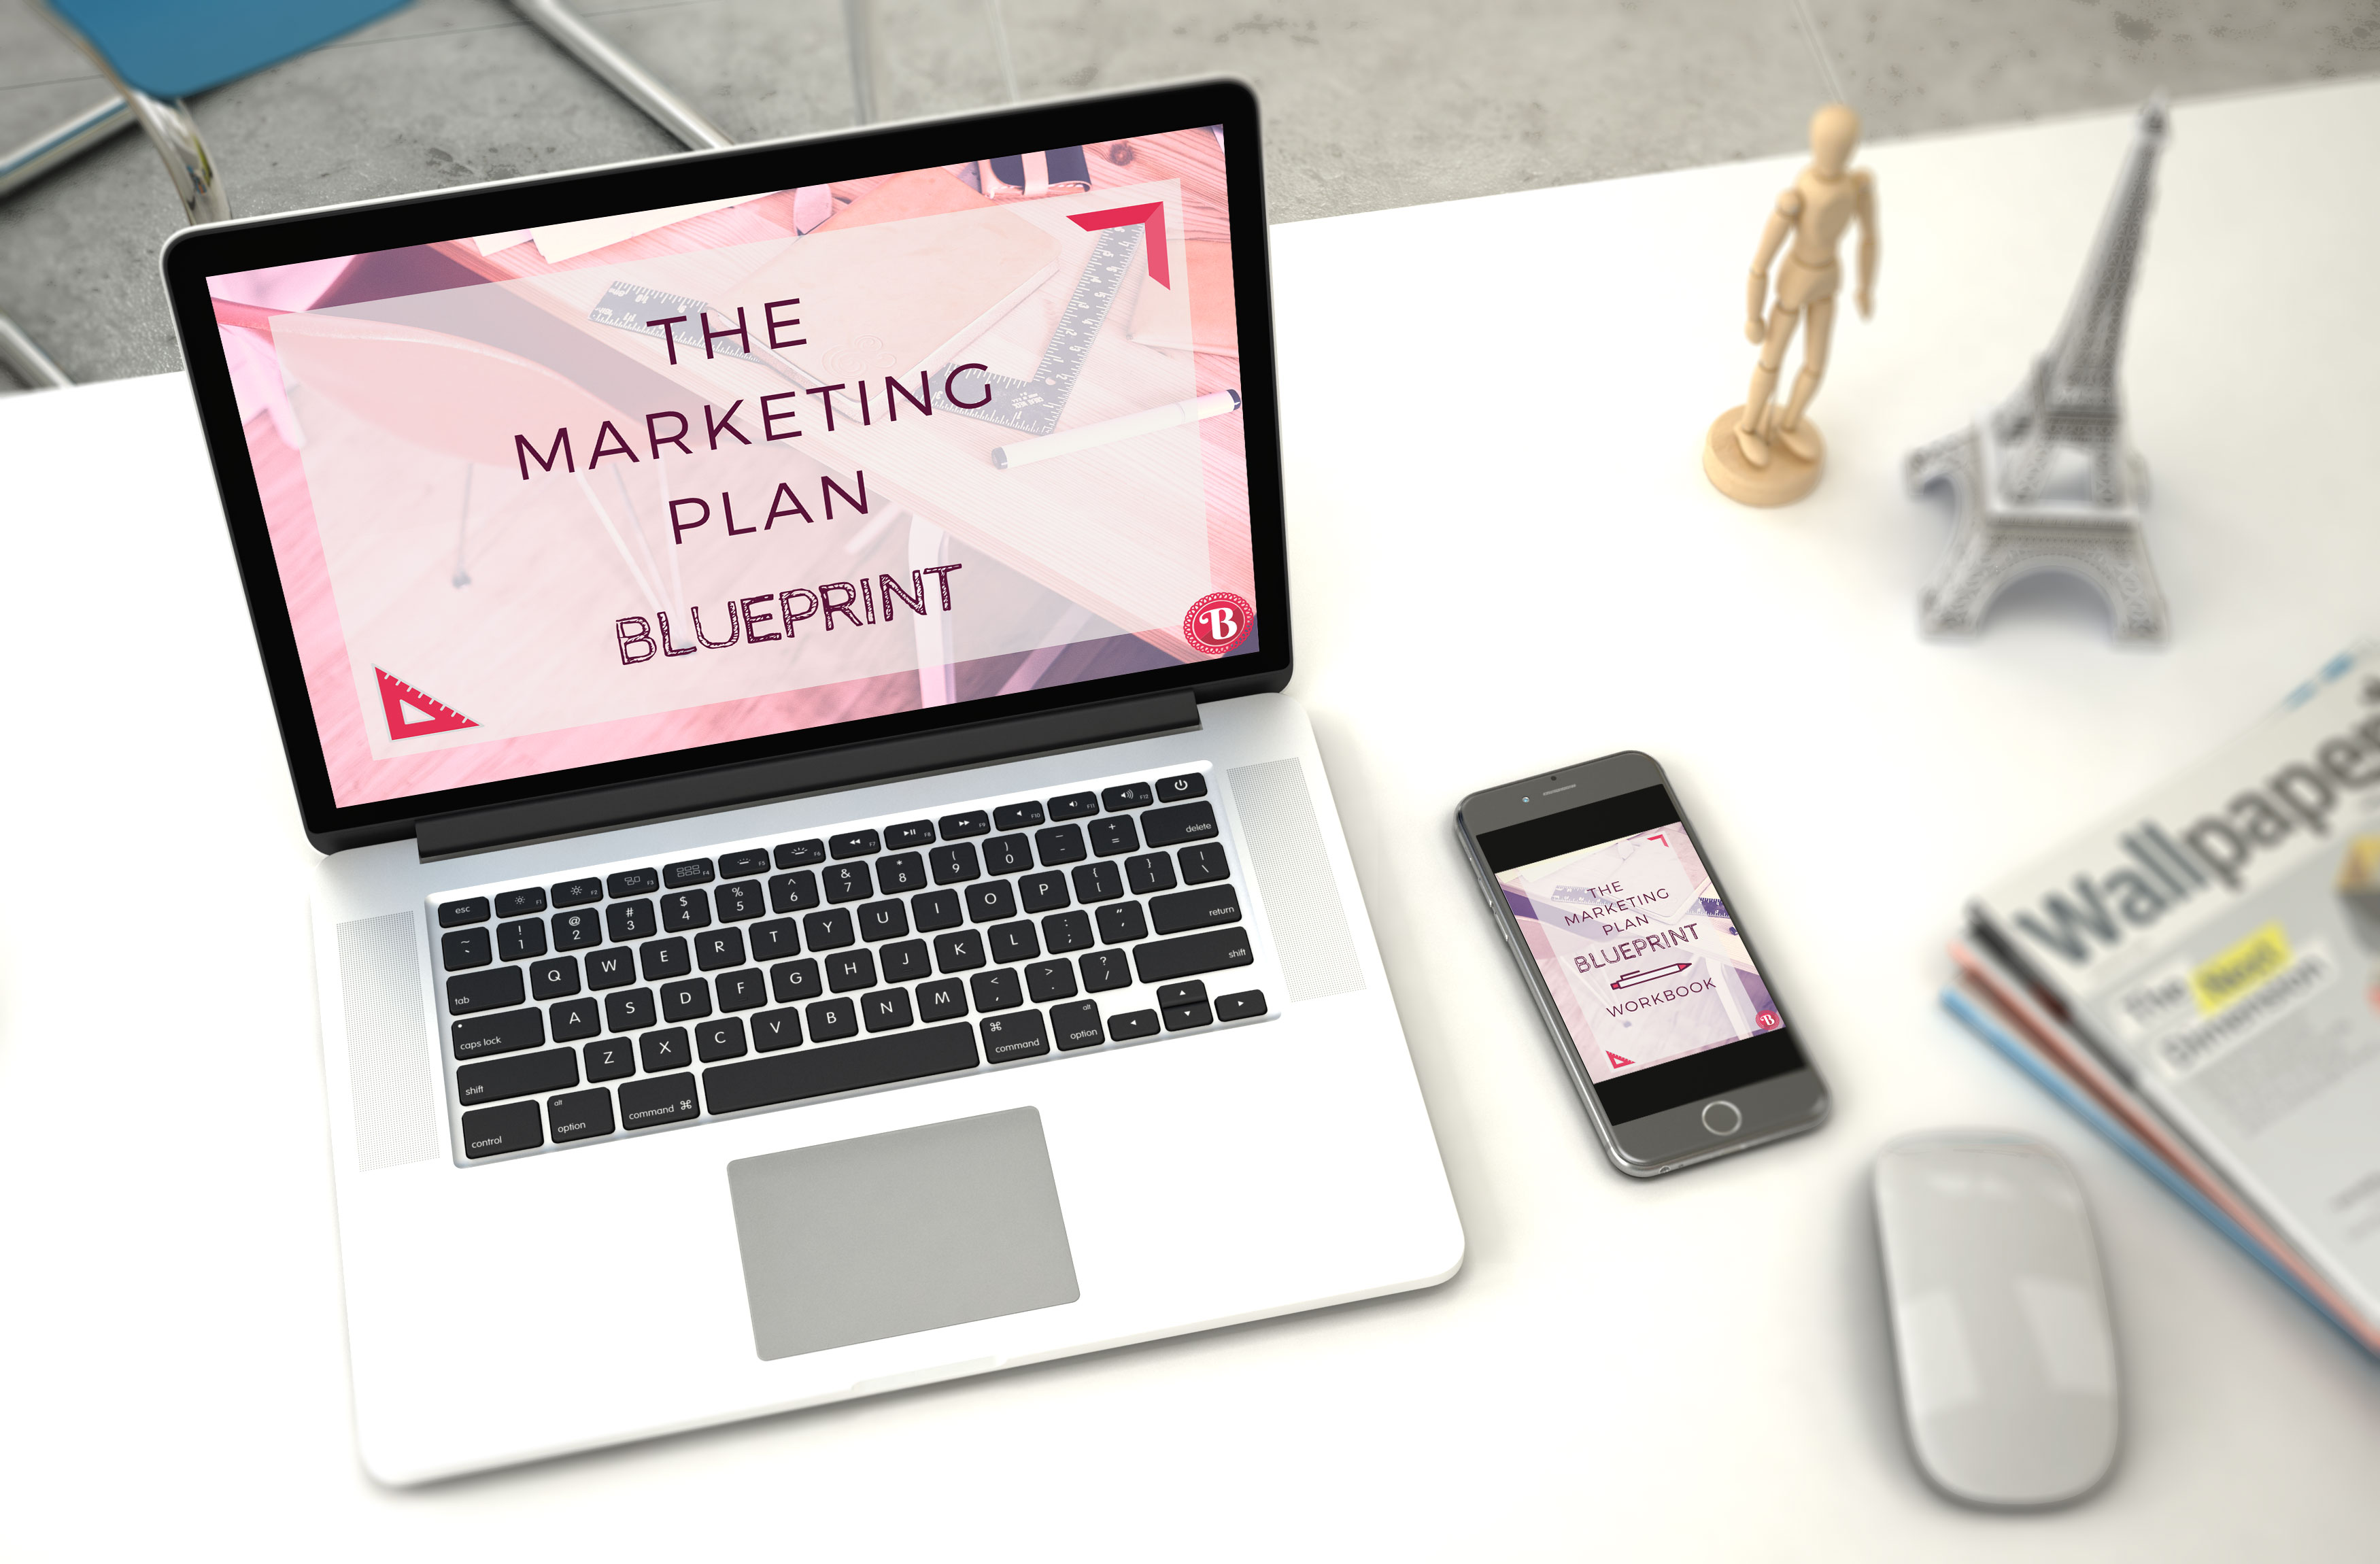 The Marketing Plan Blueprint - Get Help With Your Marketing Plan